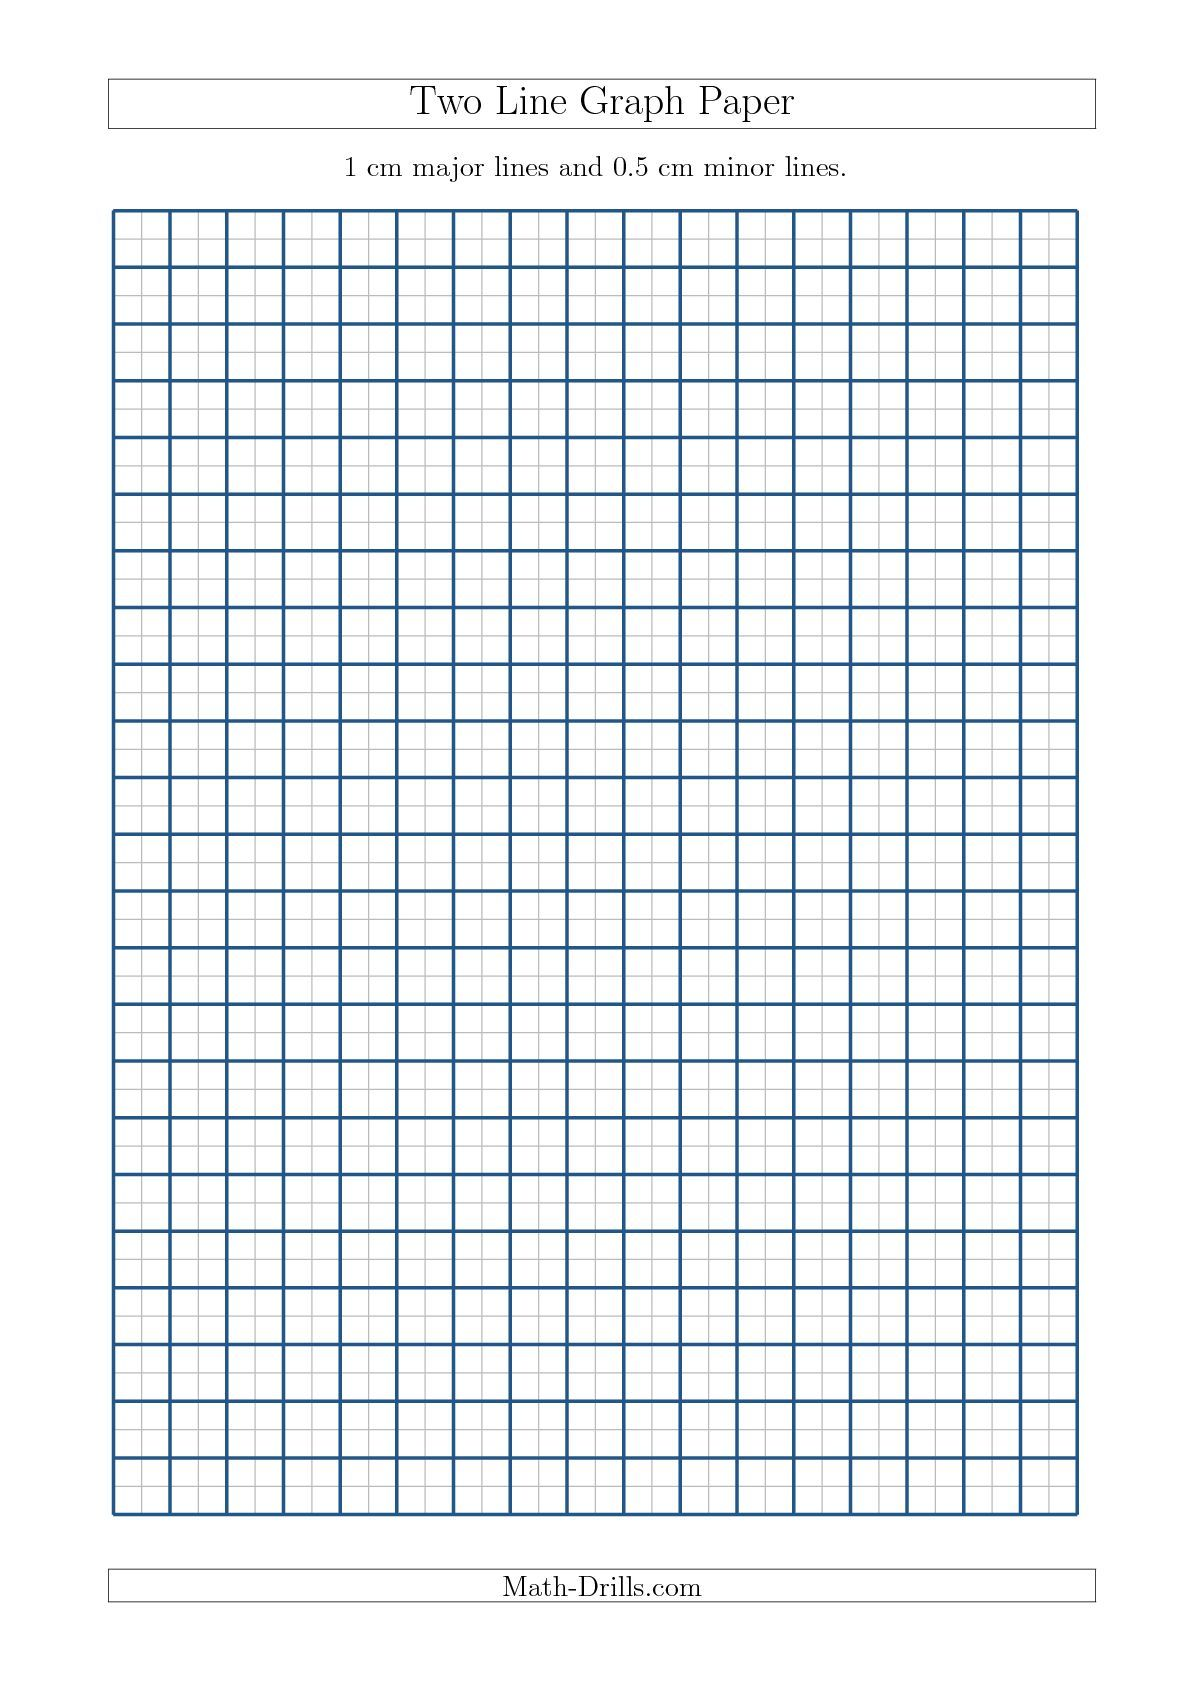 worksheet Free Printable Math Graph Paper two line graph paper with 1 cm major lines and 0 5 minor size a math worksheet